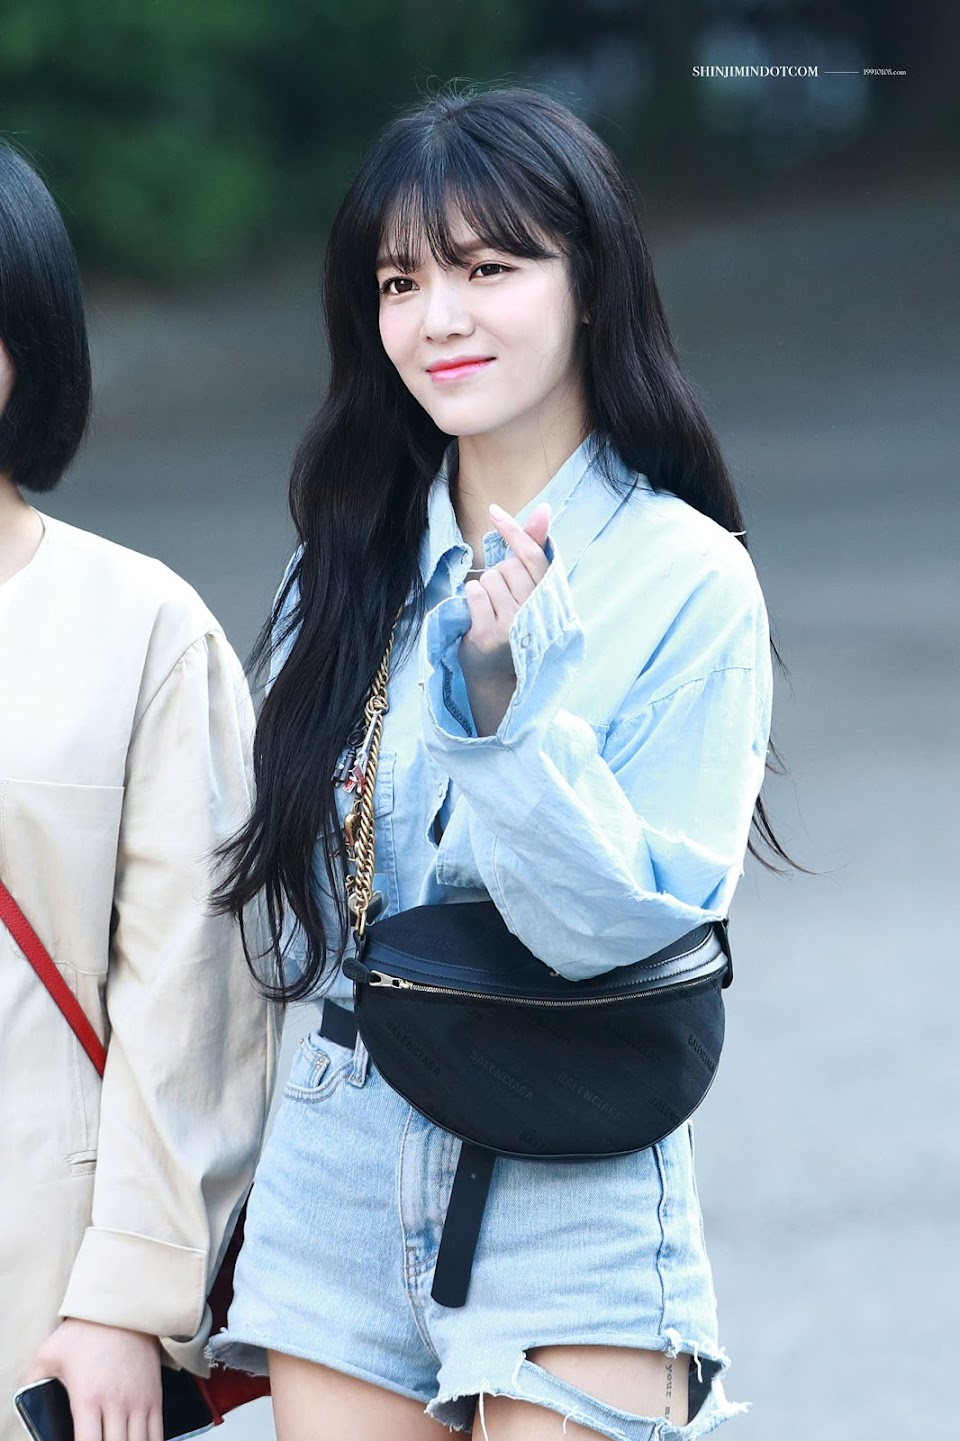 aoa jimin 2019 weight